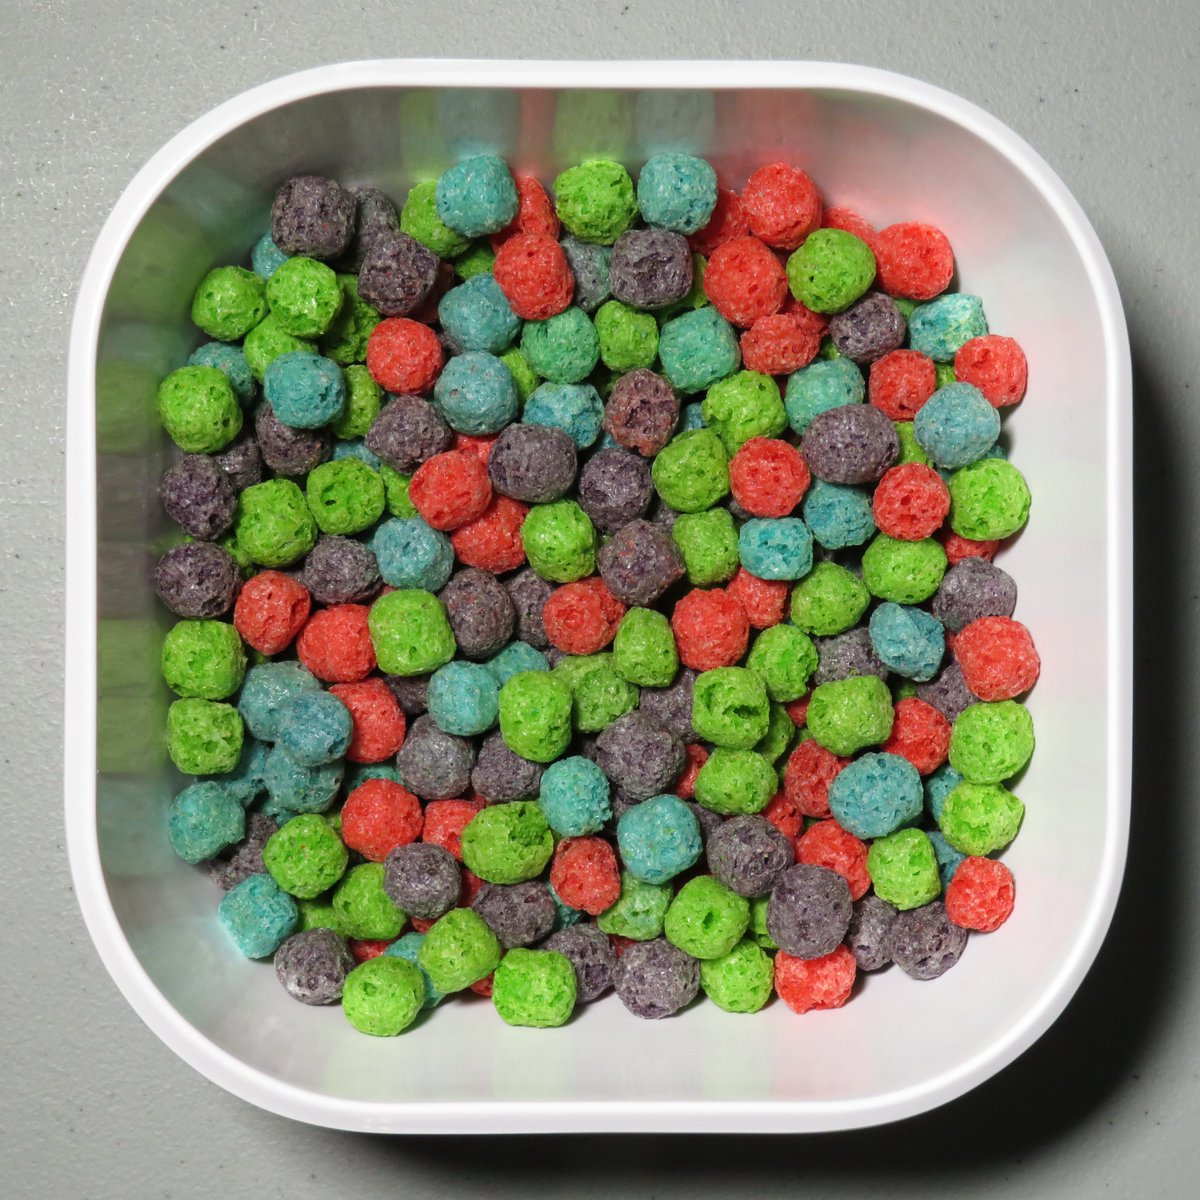 Steven Ryals On Twitter Cap N Crunch S Oops All Berries When You Pick Berries Over Squares Which Cereals Would You Mix With This Food Capncrunch Oopsallberries Cereal Colors Crunch Berries Breakfast Bowlfulfriday Https T Co Dgmzmaafxe The oops all berries! branding featured no rectangular yellow cereal pieces, only. steven ryals on twitter cap n crunch